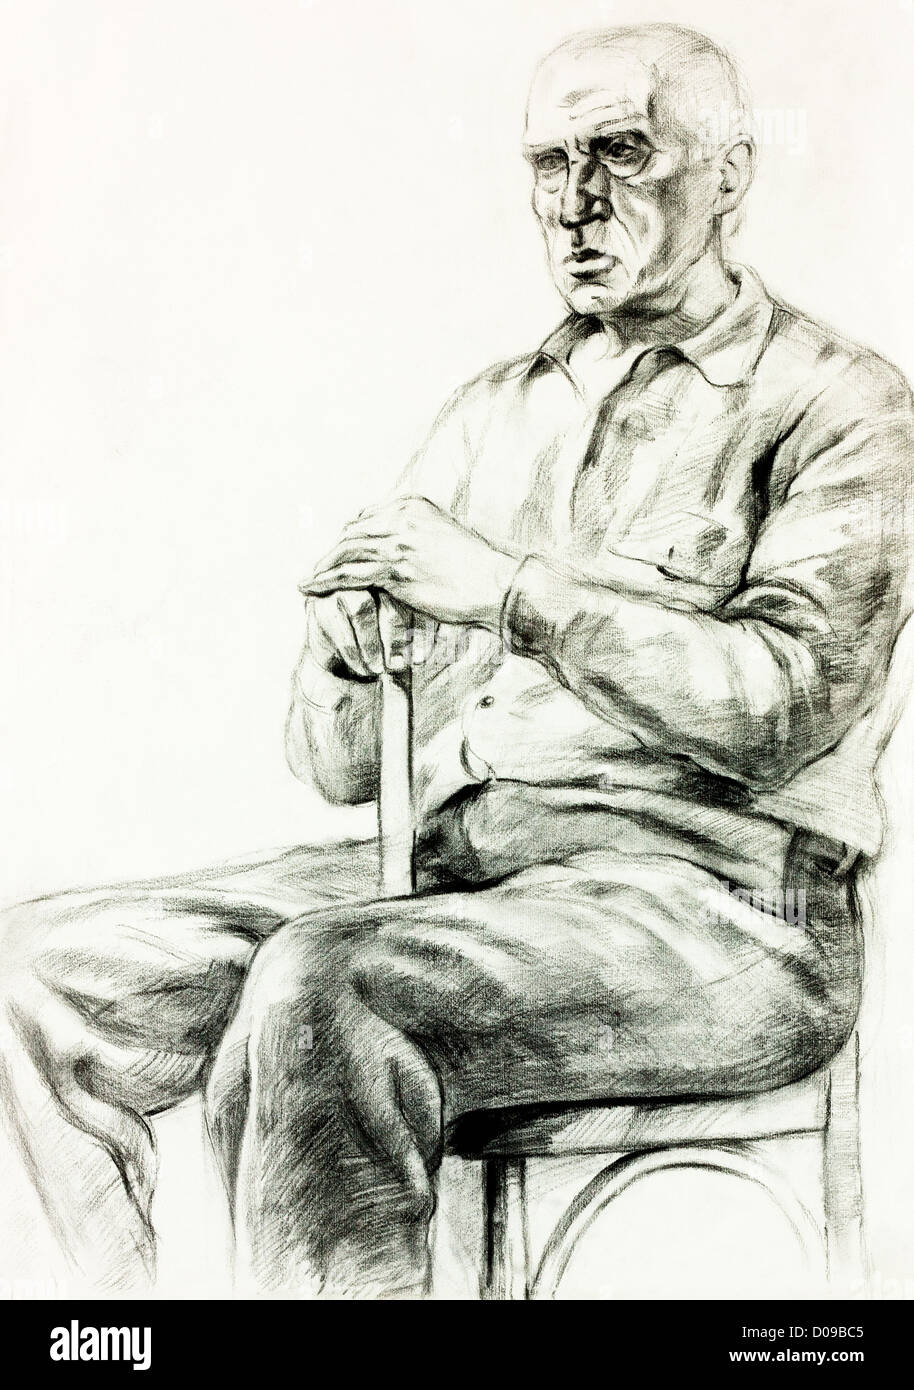 Original pencil or drawing charcoal and hand drawn painting or working sketch of a man sitting in a chair free composition